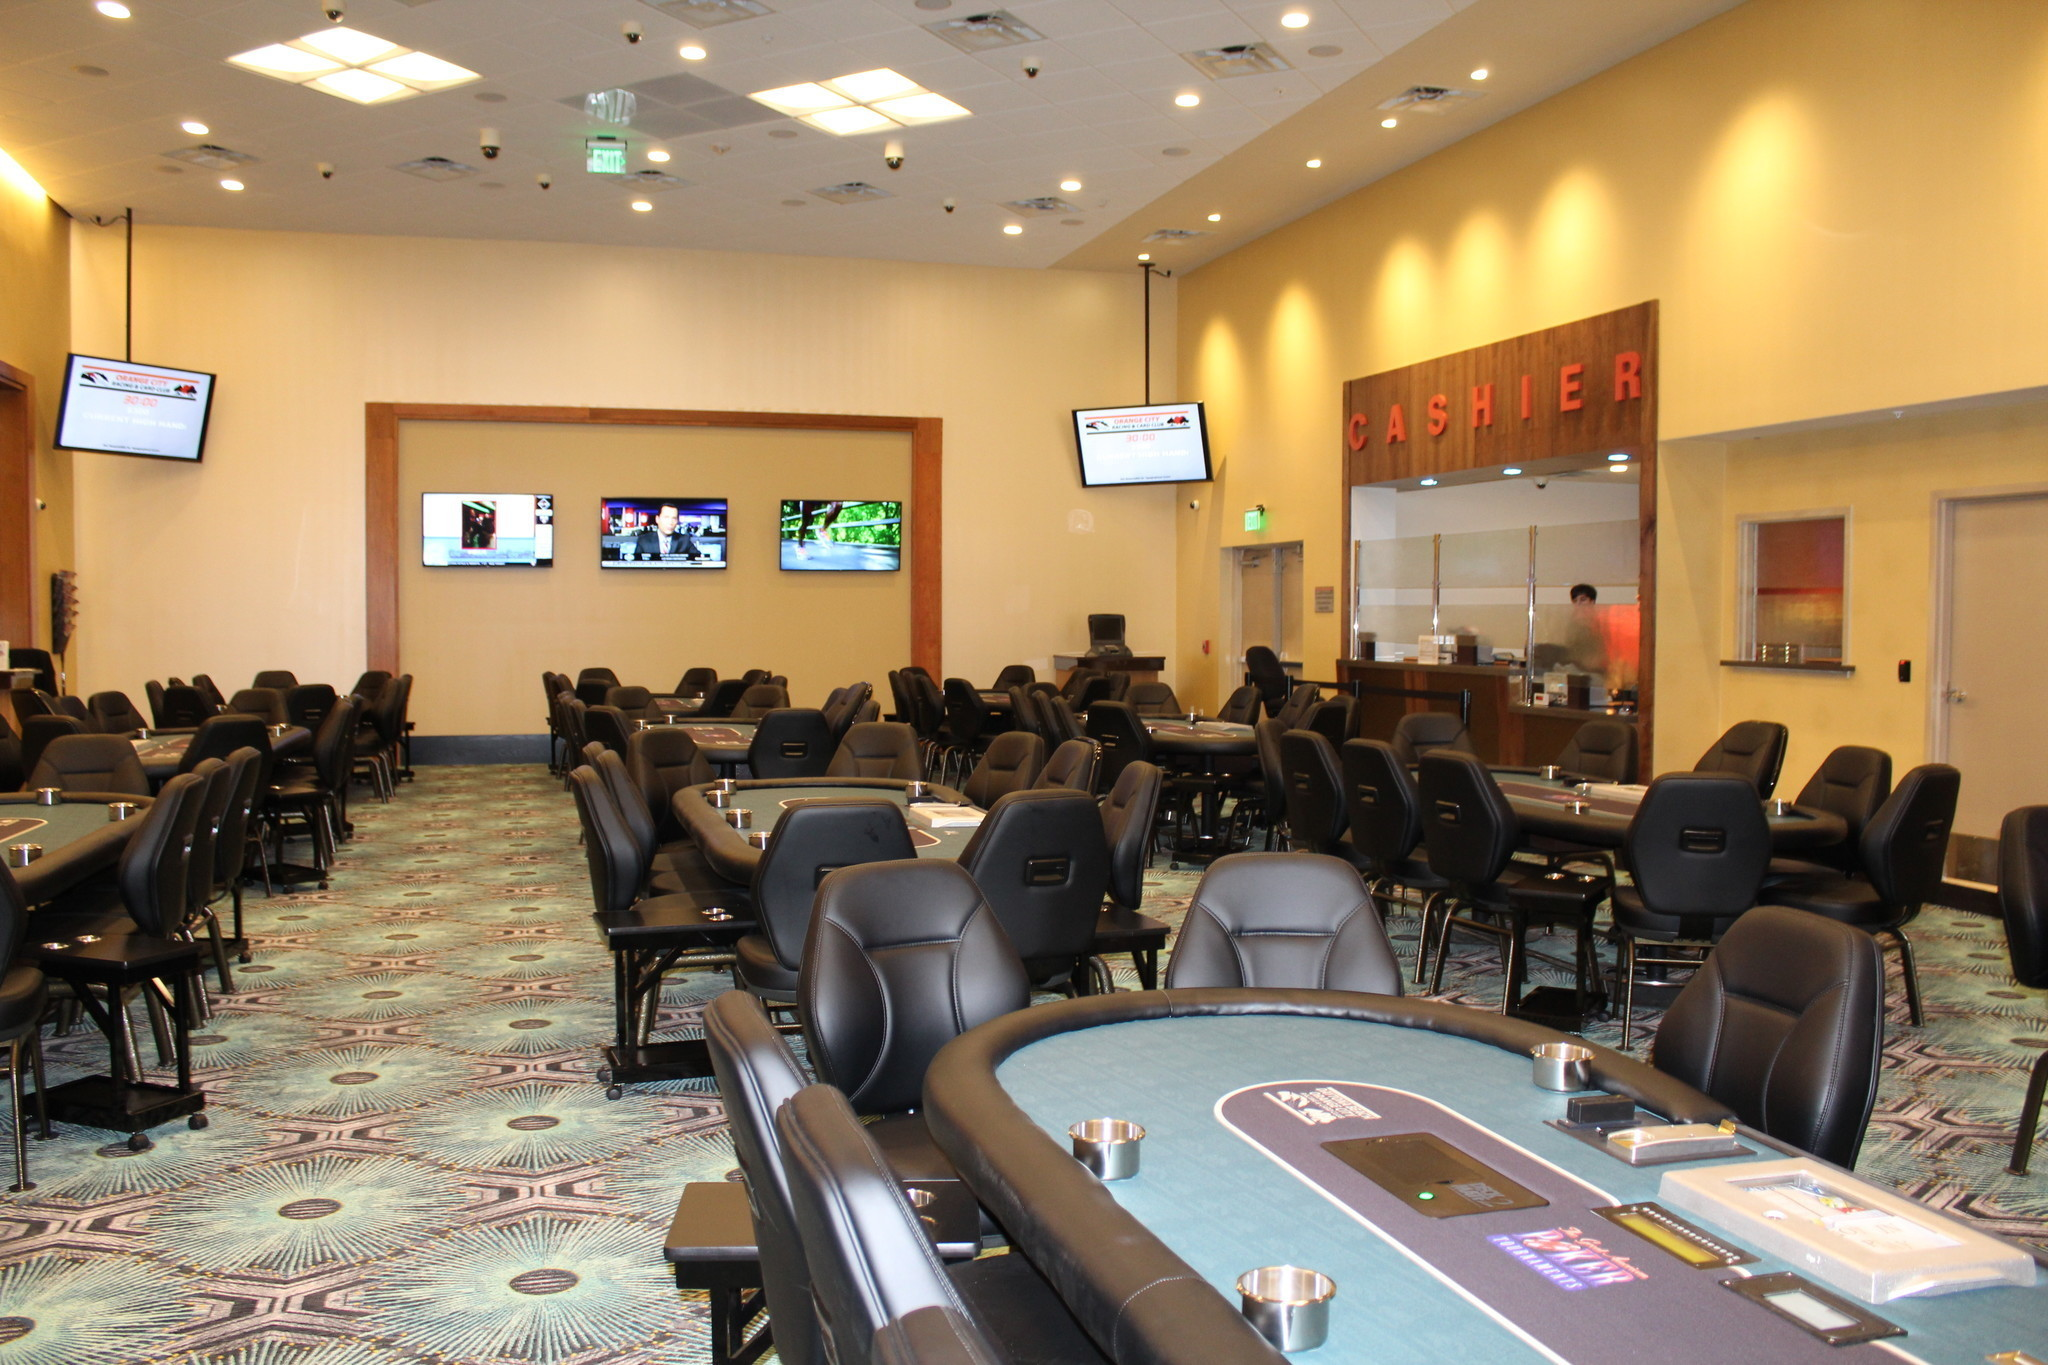 Orlando S Closest Poker Room A Win For Players Orlando